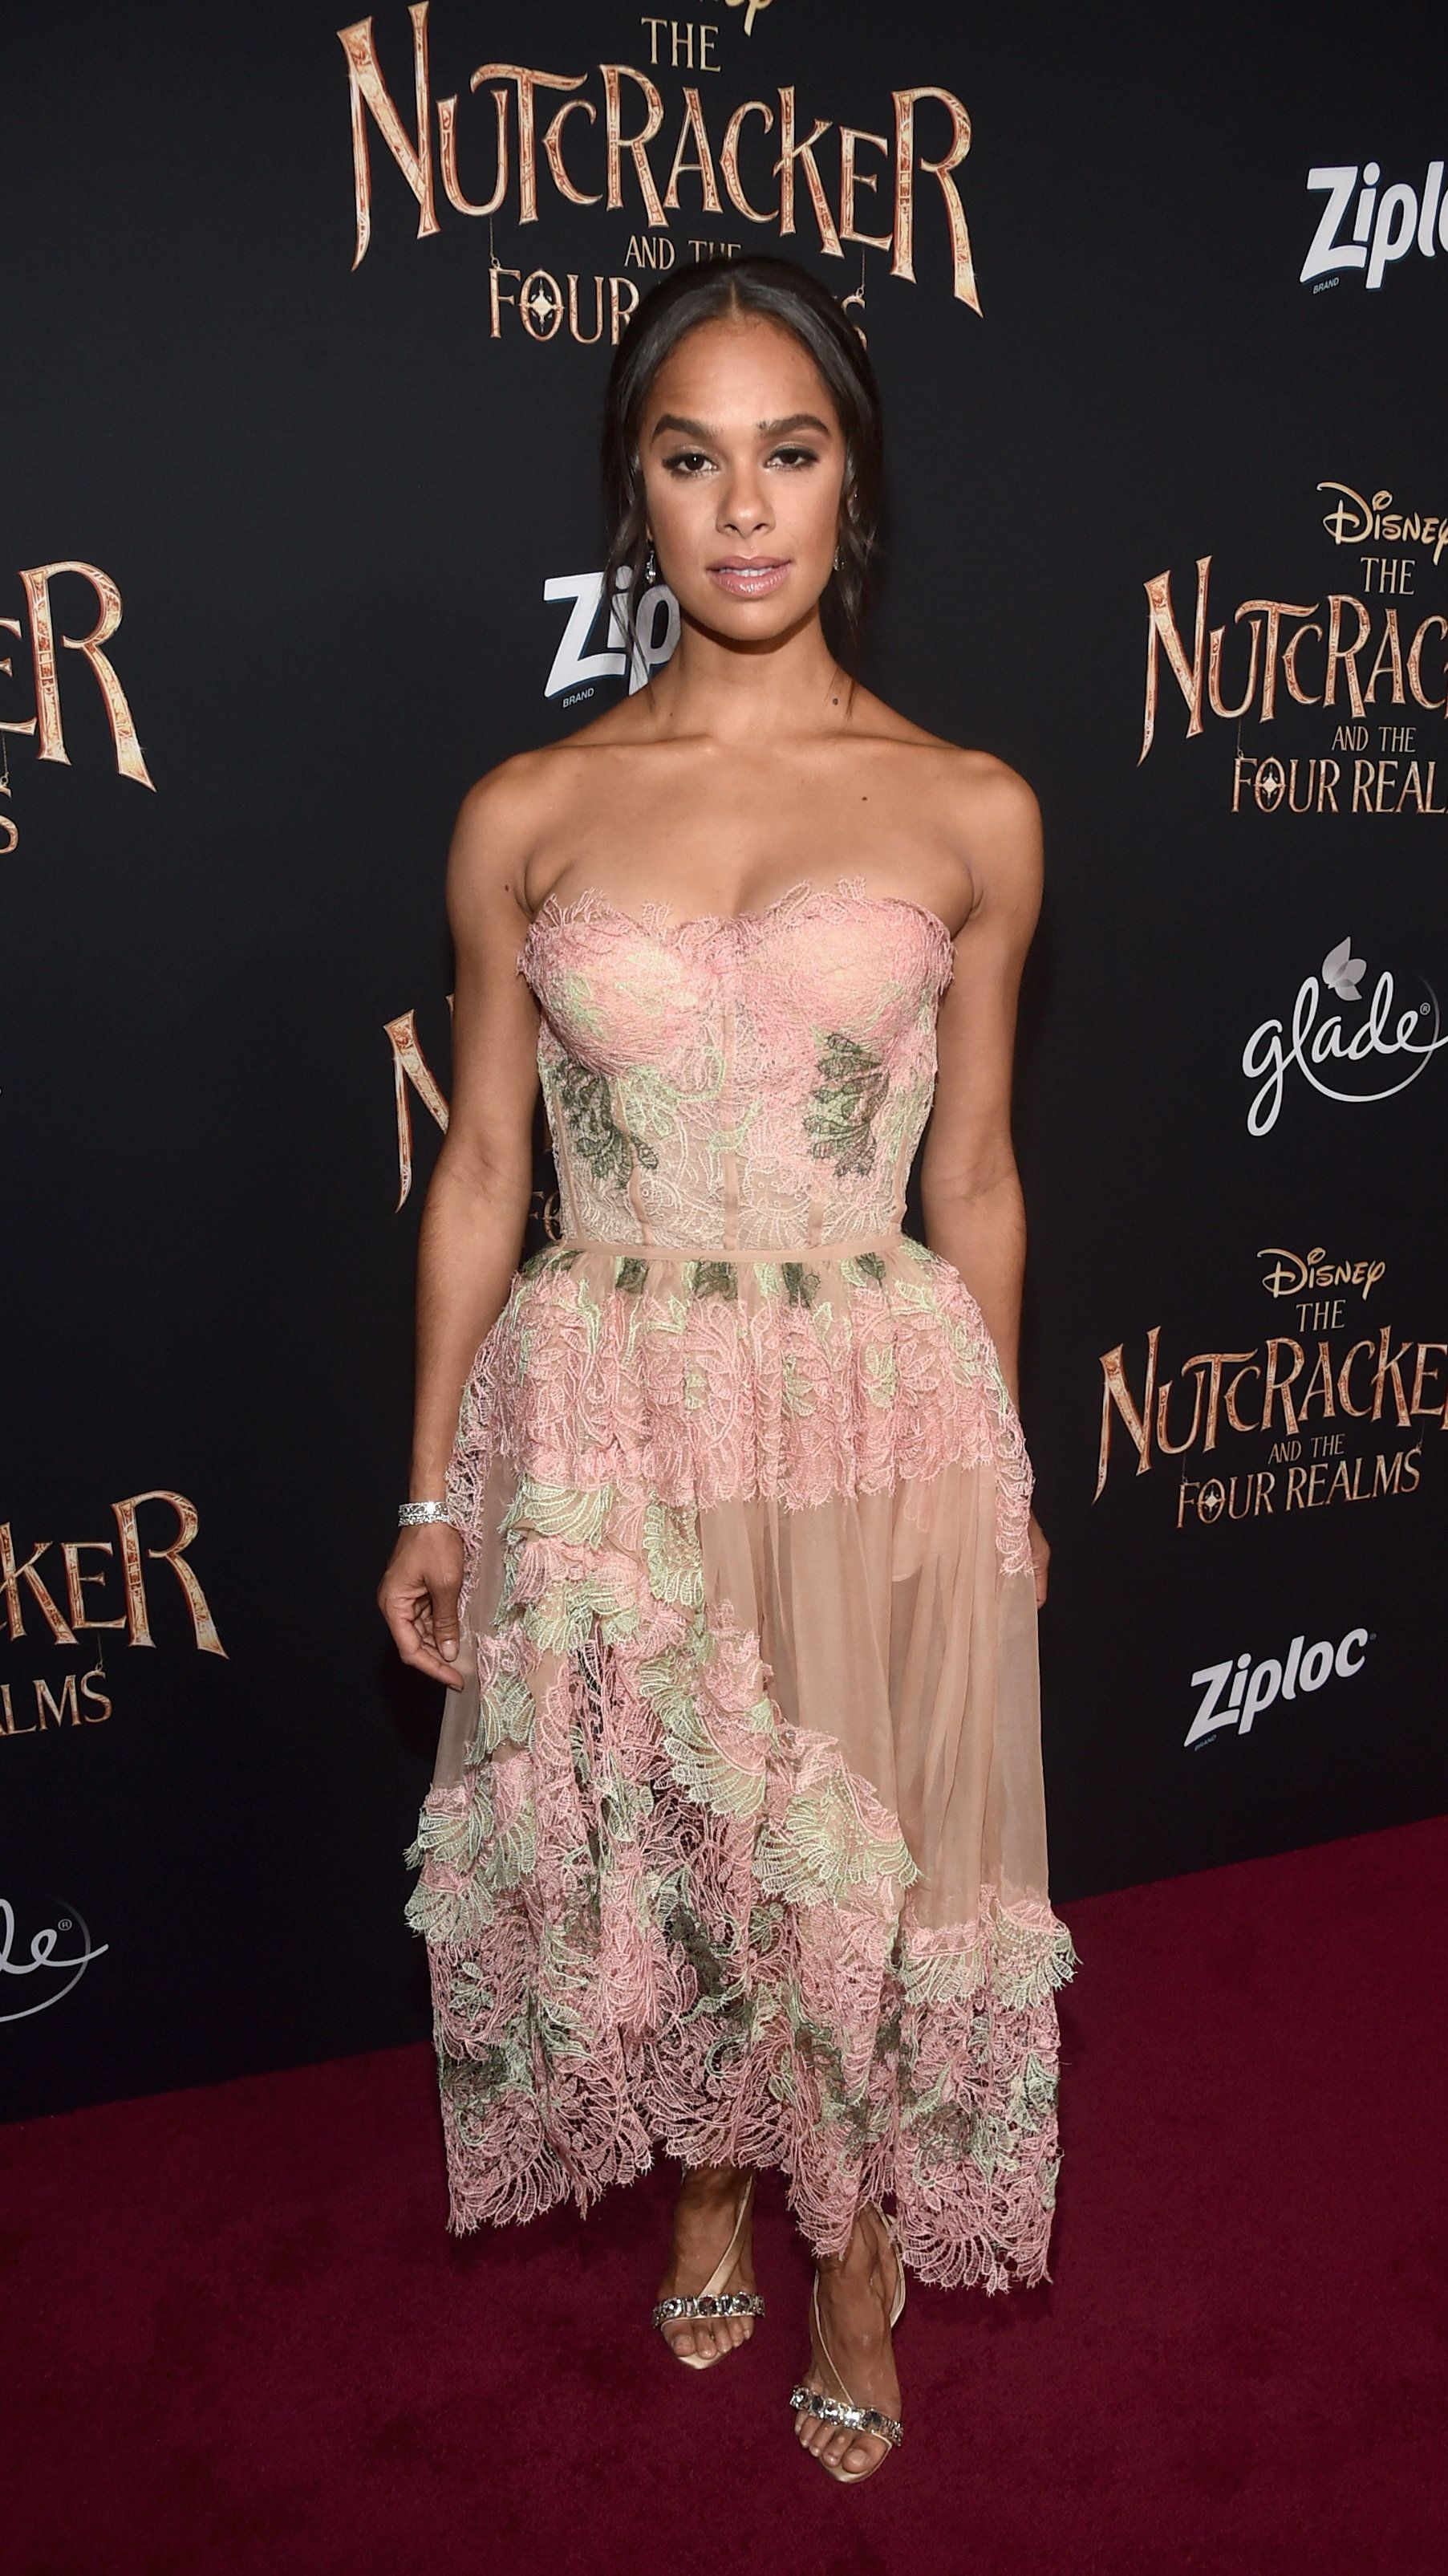 Misty Copeland Talks Importance Of Being A Black Ballerina In 'The Nutcracker'